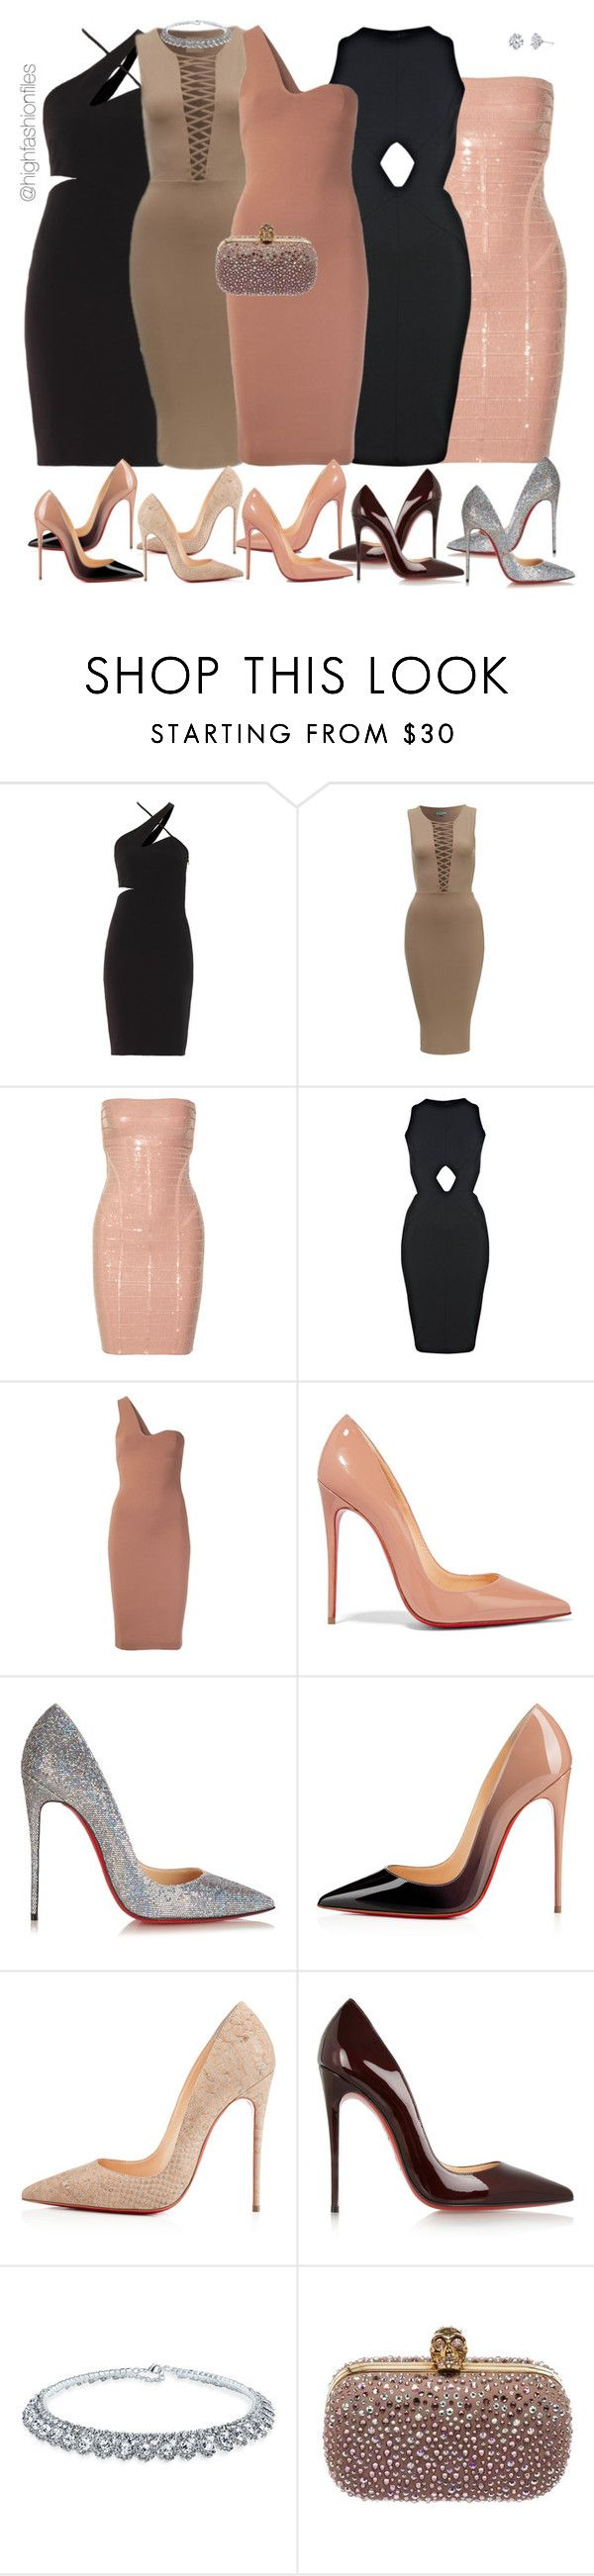 """""""Side to side"""" by highfashionfiles ❤ liked on Polyvore featuring Versace, Hervé Léger, Miss Selfridge, STELLA McCARTNEY, Christian Louboutin, Bling Jewelry, Alexander McQueen and Harry Kotlar"""